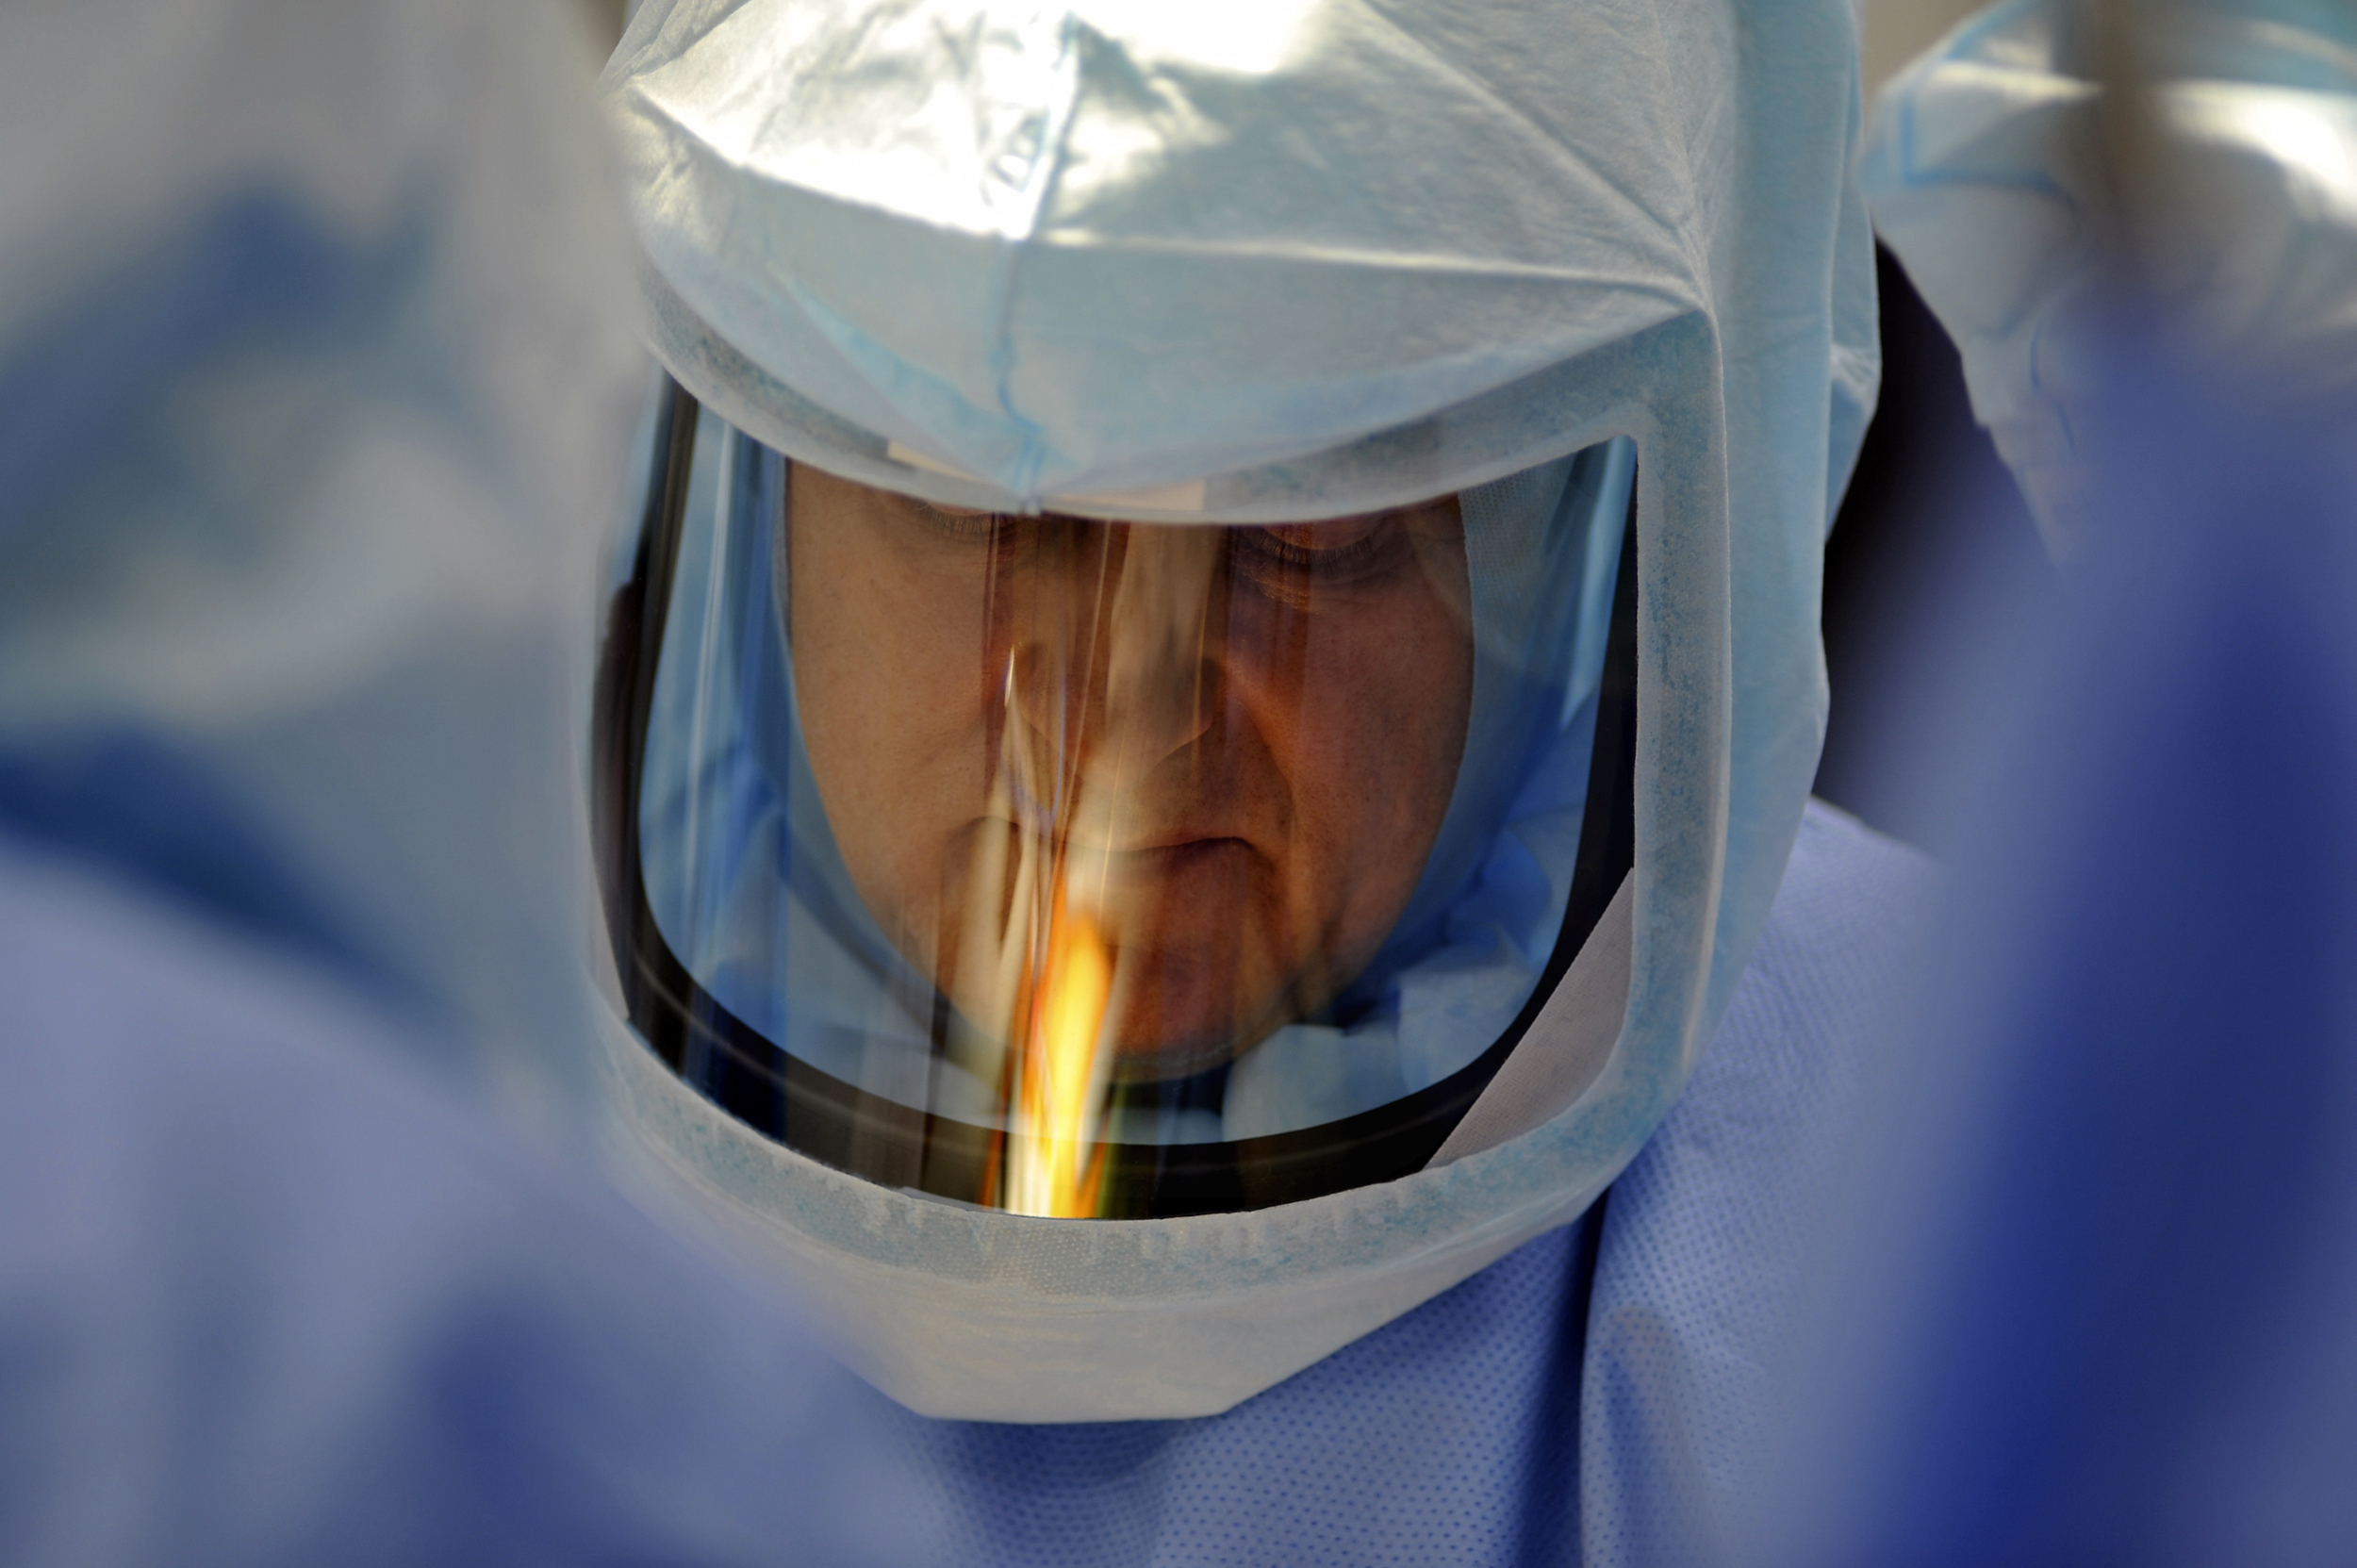 Dr. Bernasek, with the Ioban reflected in his face shield, is about to make the incision.